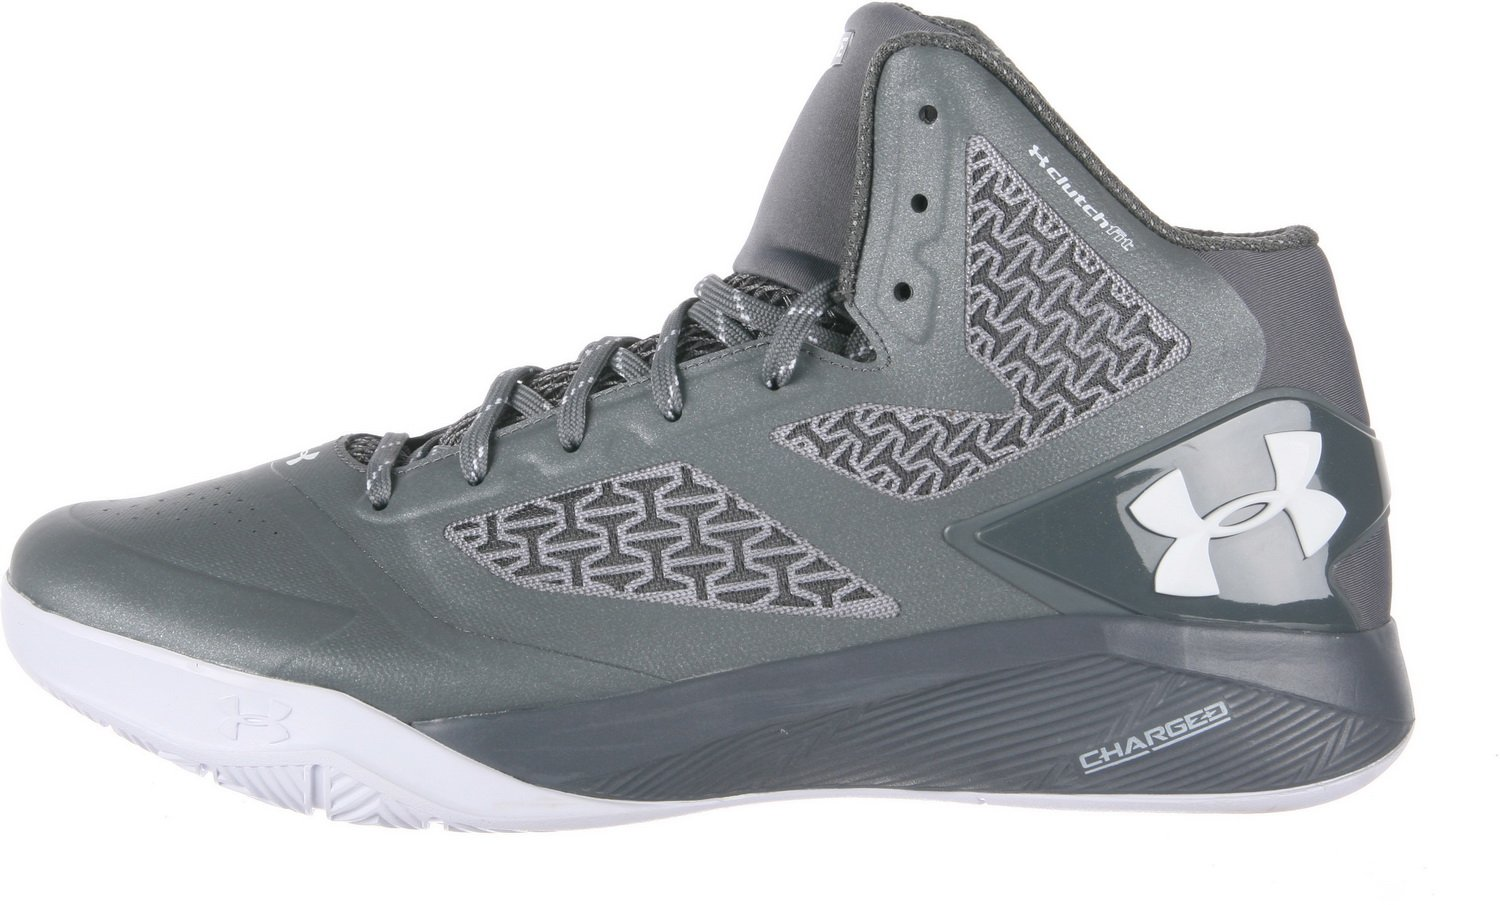 Under Armour Men's B00SLP0RX6 Ua ClutchFit Drive Ii B00SLP0RX6 Men's 5.5 D(M) US|Graphite/Metallic Silver/White 281a7d